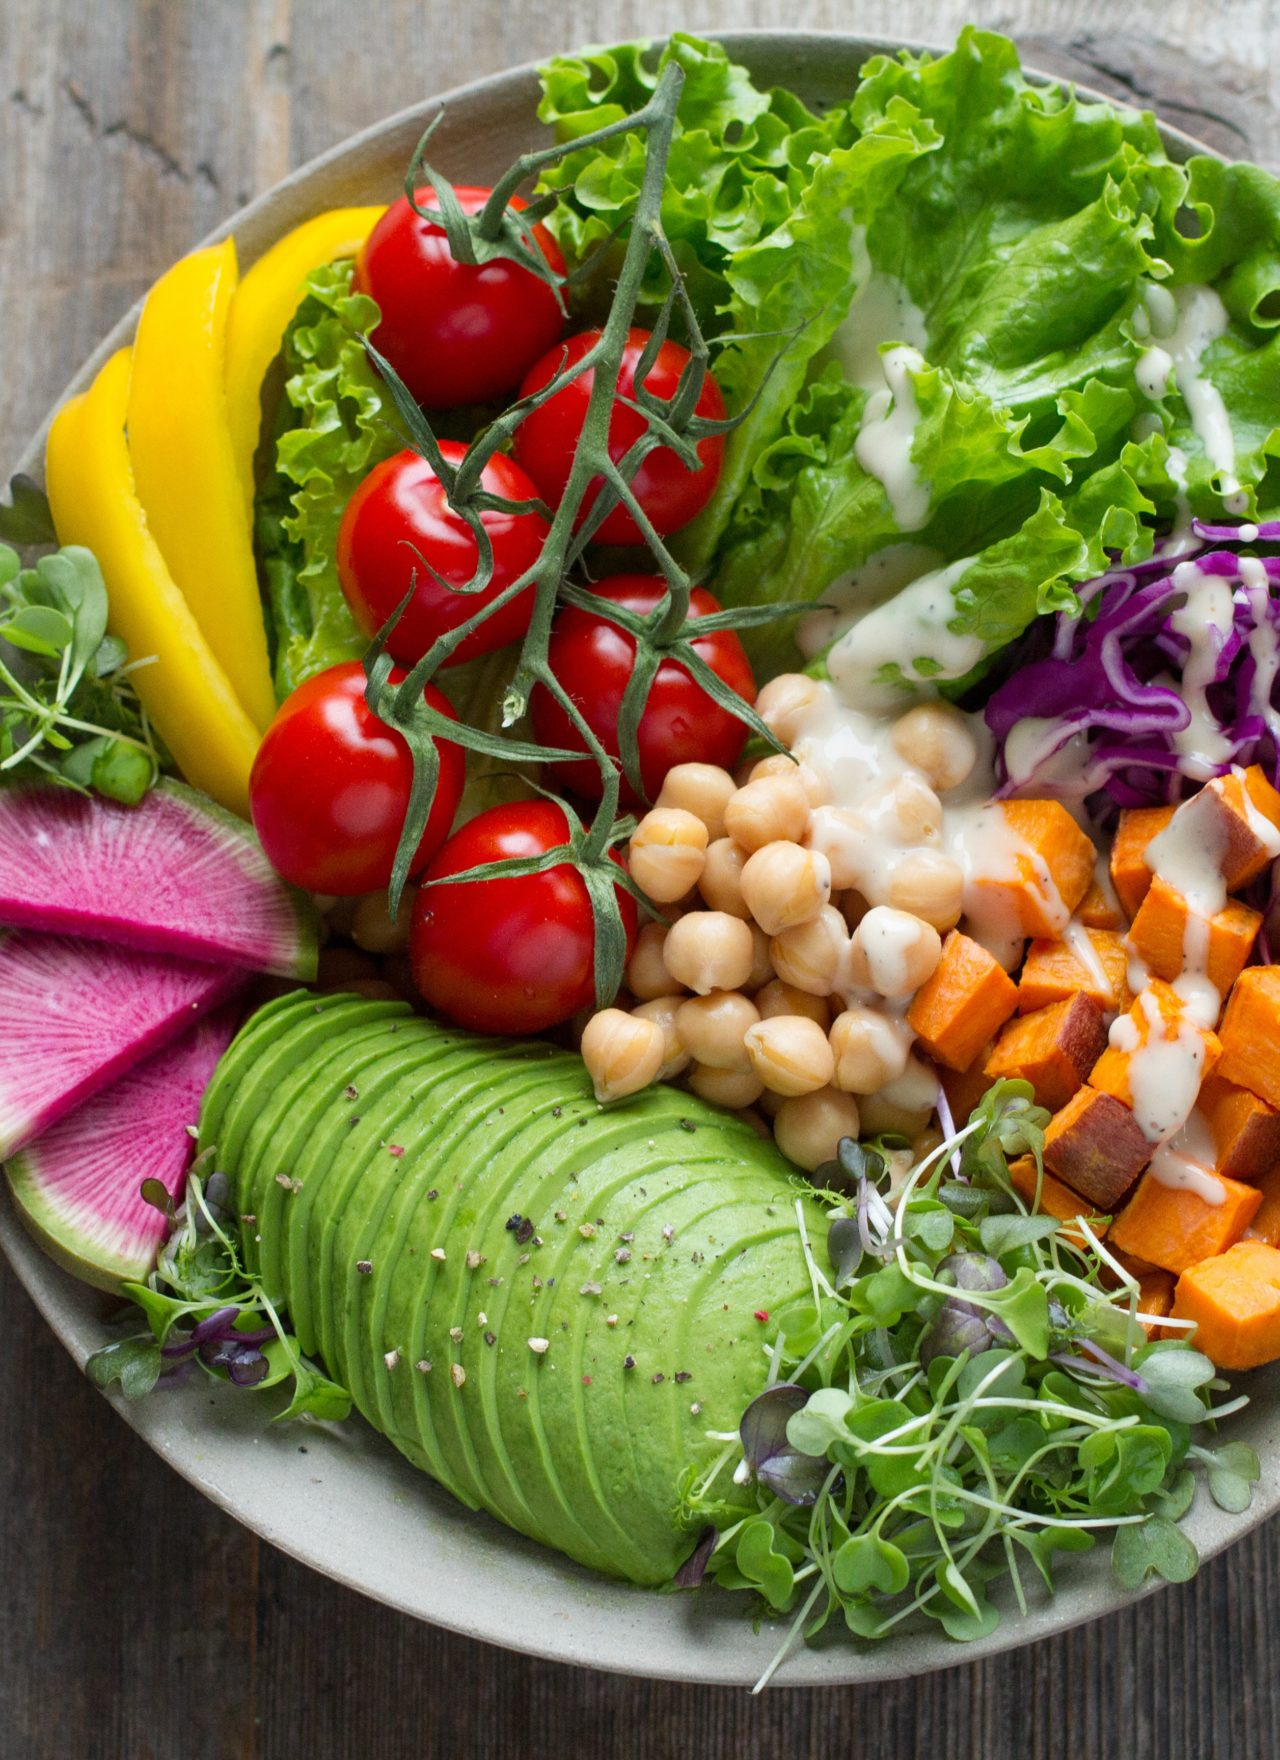 Choosing The Best Diet, Vegan, Paleo, Keto or Clean Eating